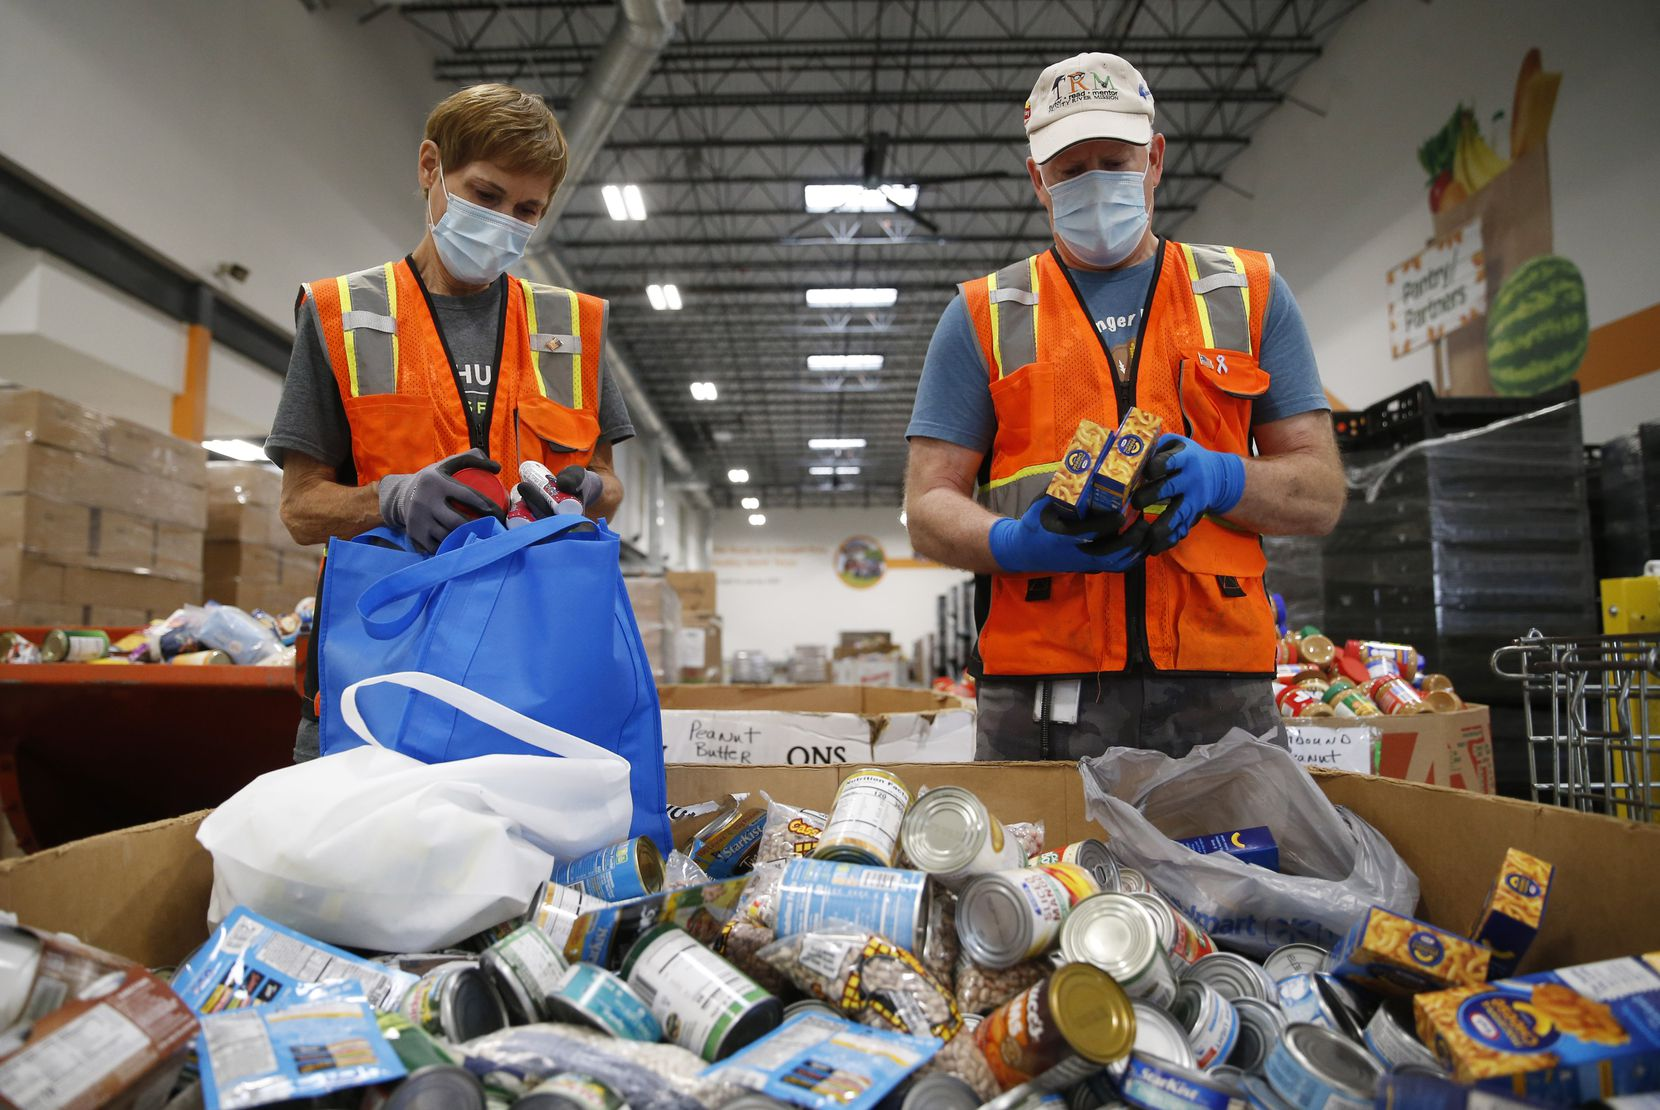 Volunteers Jill Mendenhall and her husband Max Chesser of Frisco work on sorting and checking the dates of food donations at North Texas Food Bank on Friday, November 20, 2020 in Plano, Texas. Mendenhall and Chesser started volunteering at North Texas Food Bank after they retired from Frito-Lay almost three years ago. After COVID-19 hit the U.S. in March, they made a decision to continue to volunteer, even though most of the fellow volunteers decided to stay home.